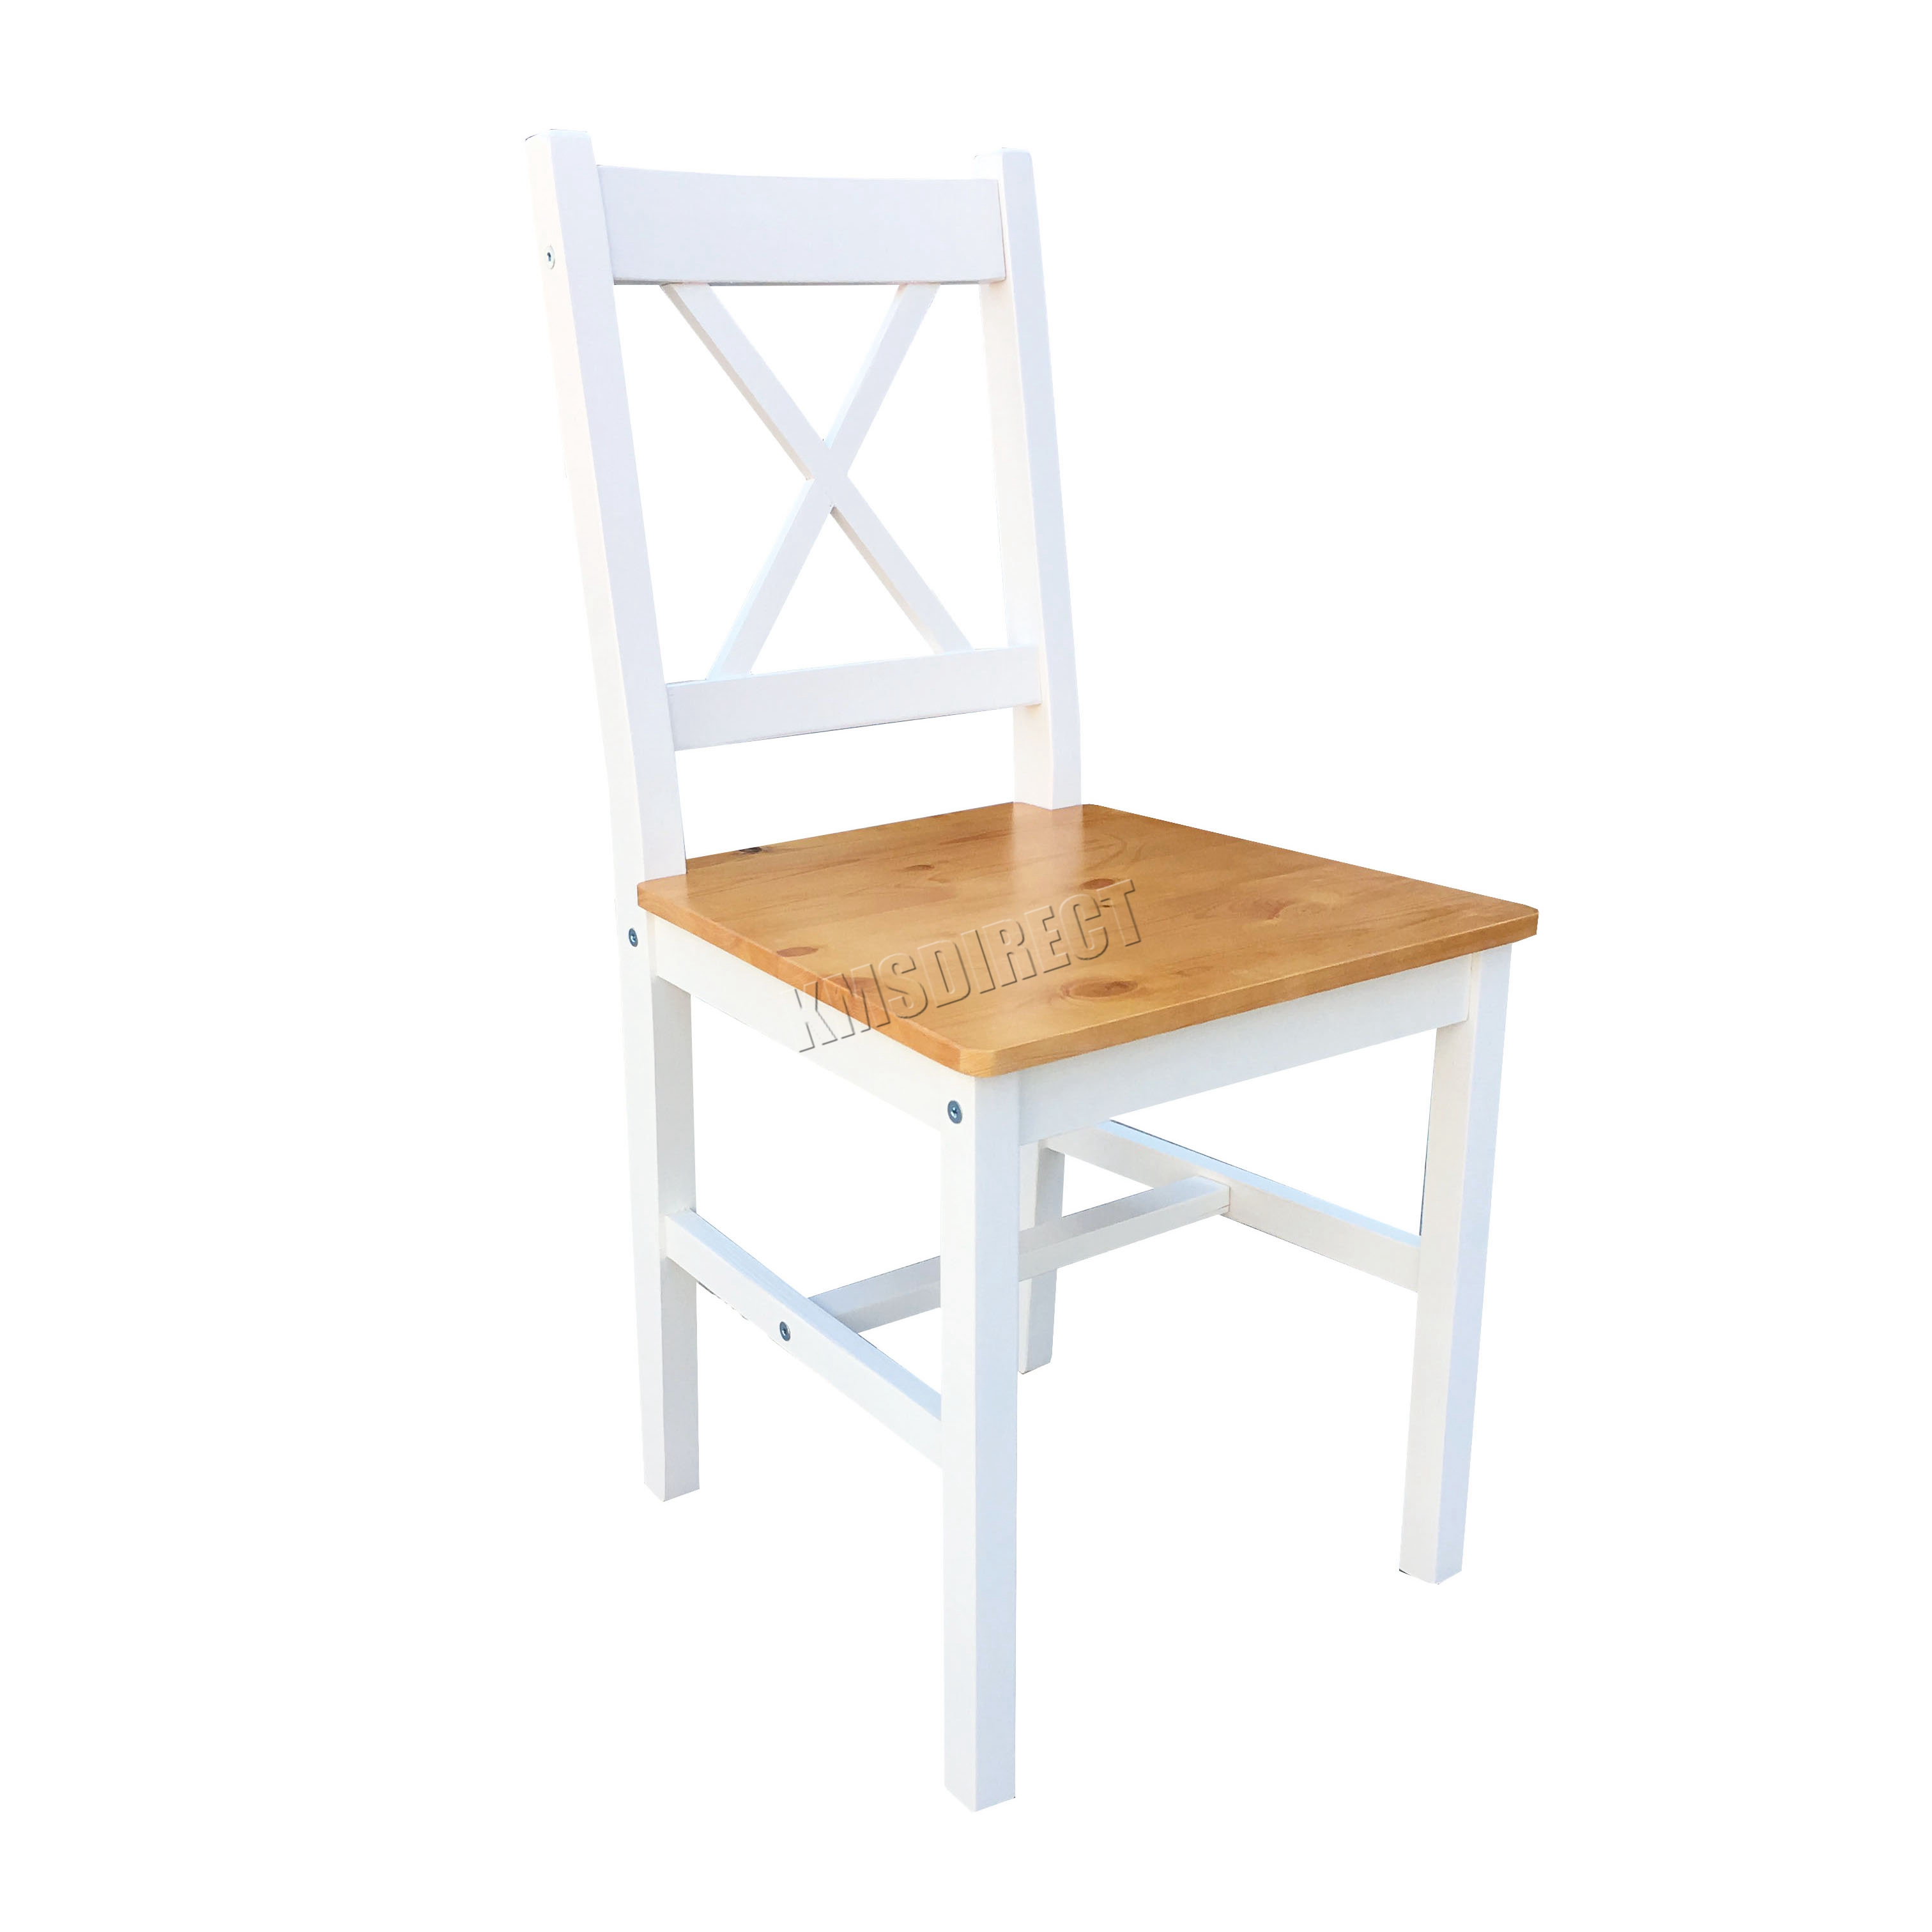 solid wood kitchen chairs buy snorlax bean bag chair westwood quality wooden dining table and 4